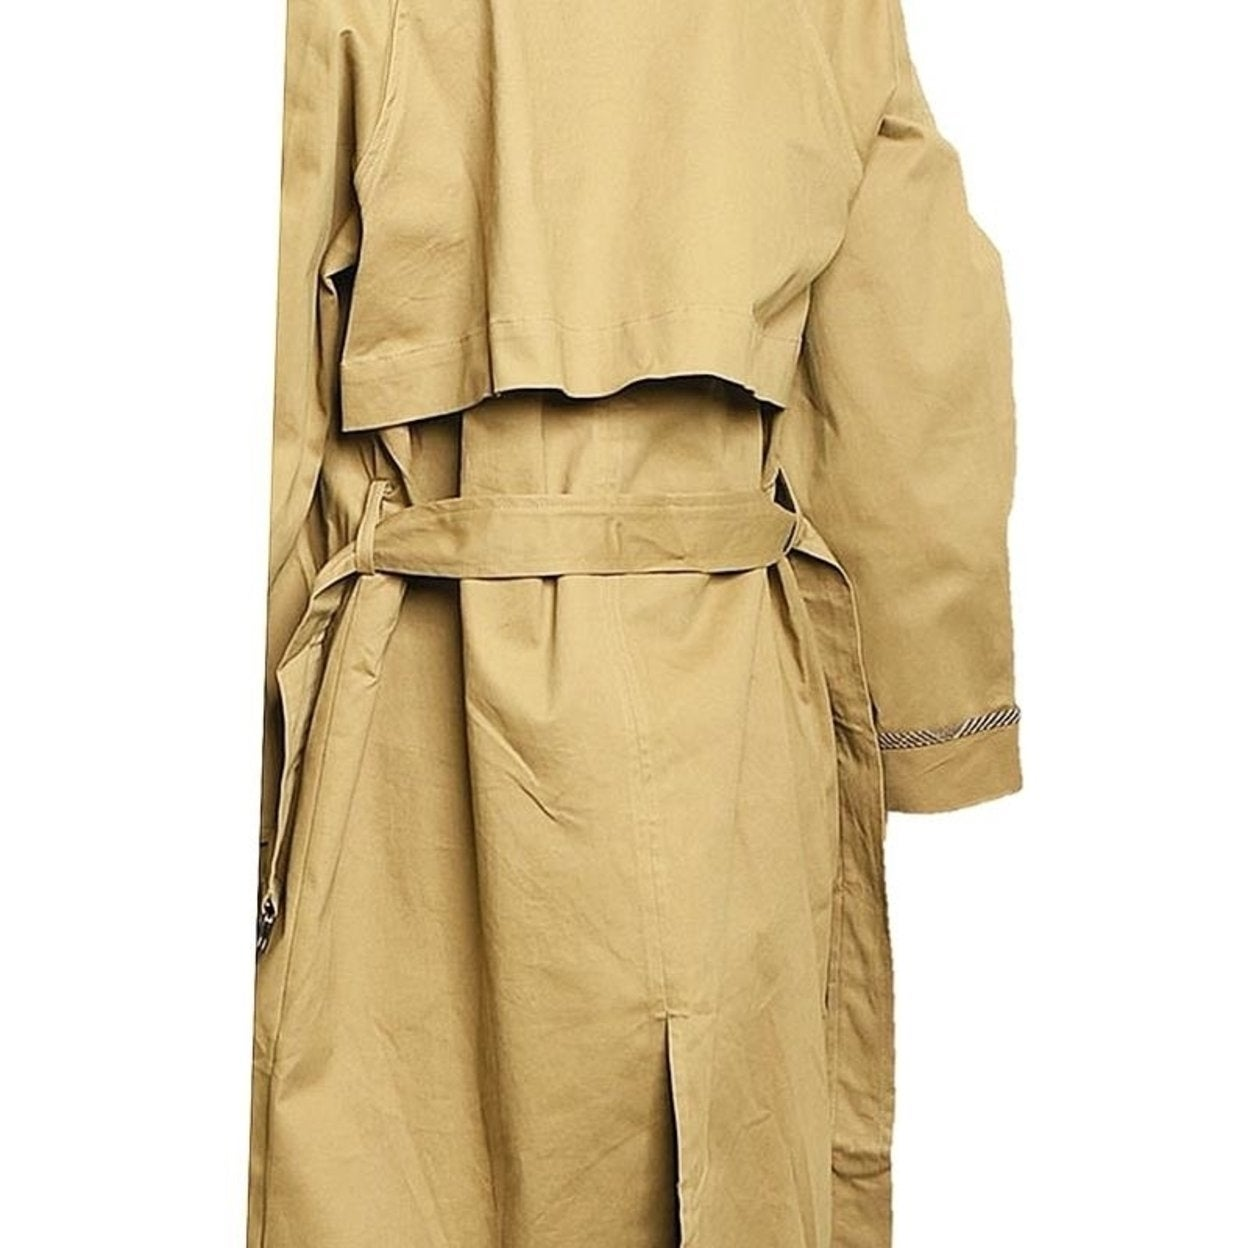 54133b8eb9b62 Shop Haute London Khaki Double Breasted Long Drapey Hunting Trench Coat -  On Sale - Free Shipping Today - Overstock - 27442882